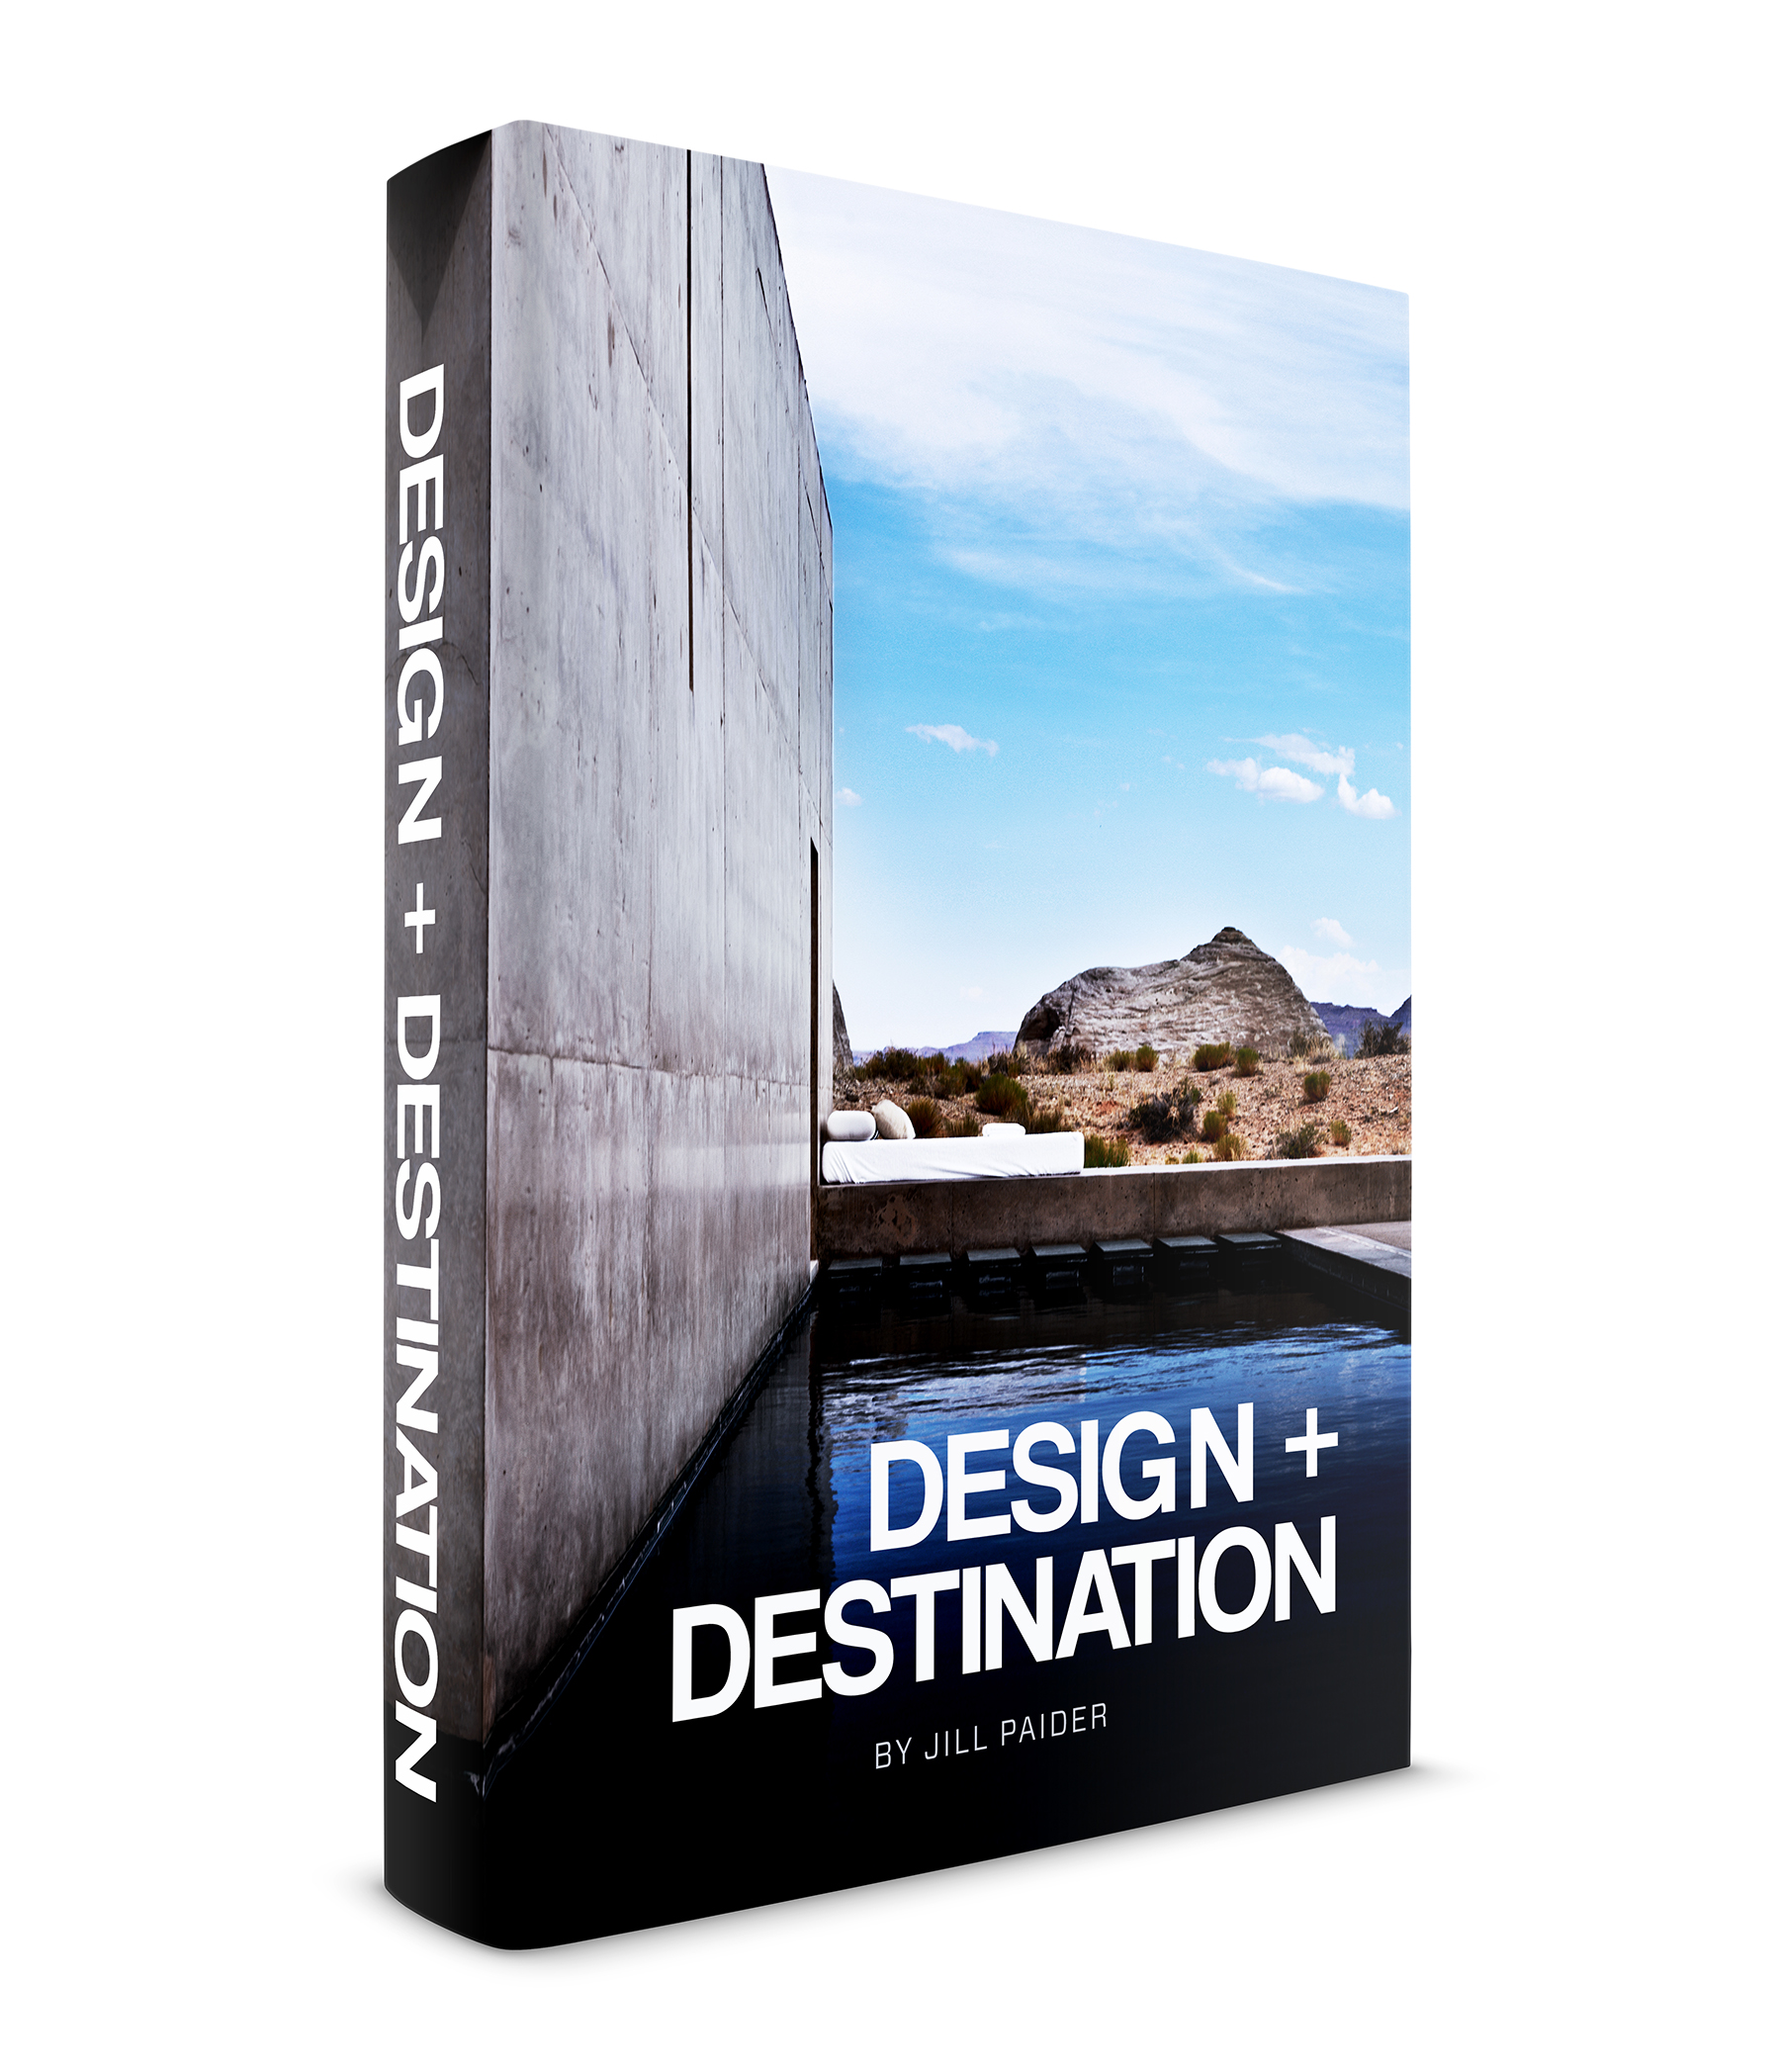 DESIGN + DESTINATION